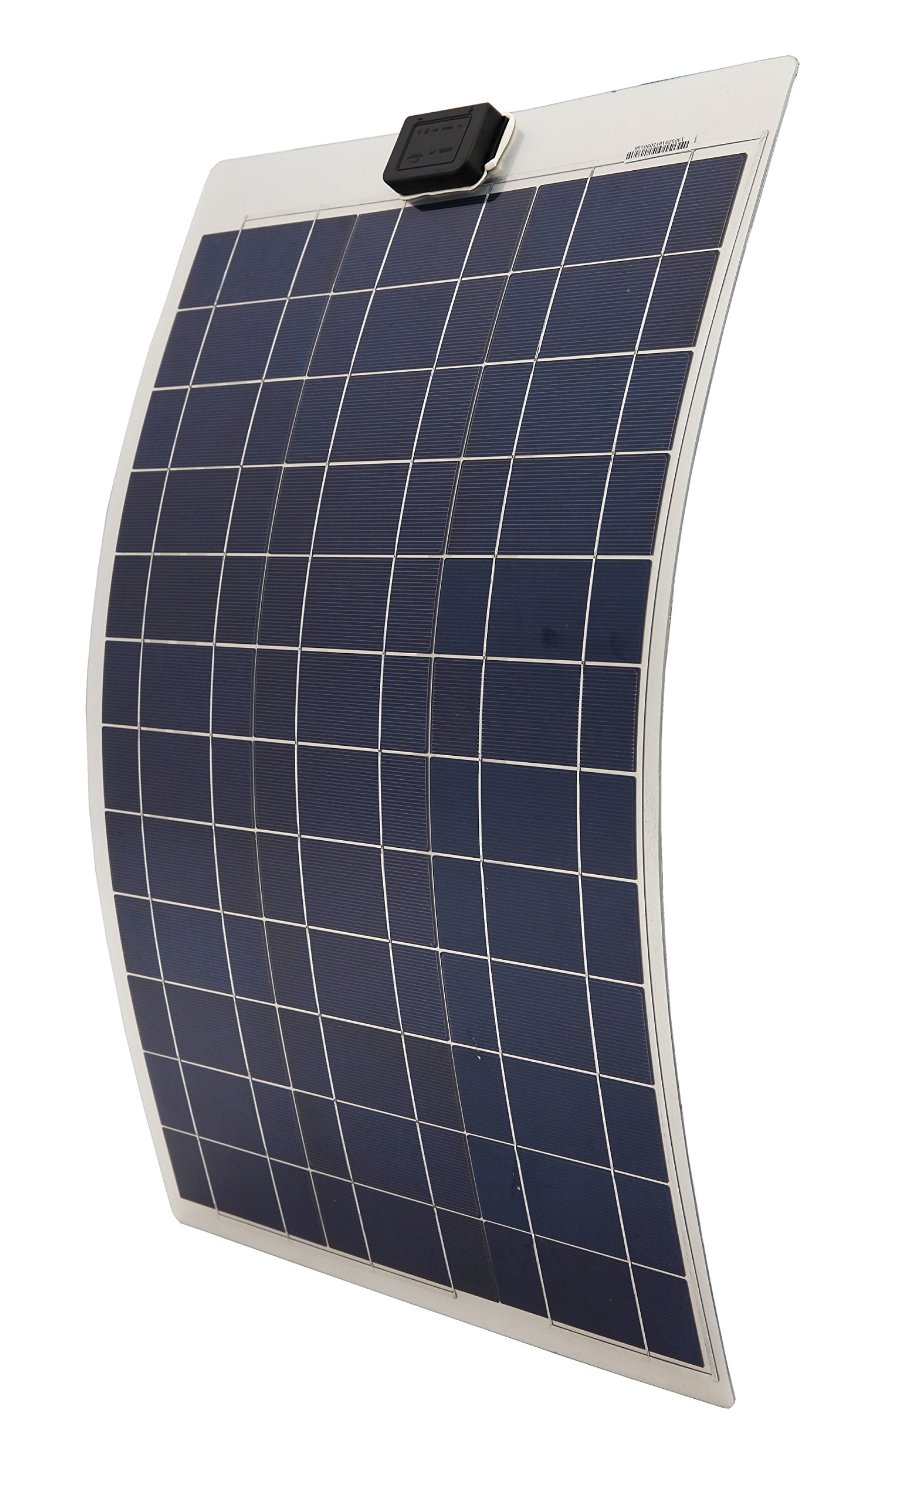 DE stock,50W poly semi-flexible solar panel, 50 watt flexible solar panel for yacht boat RV